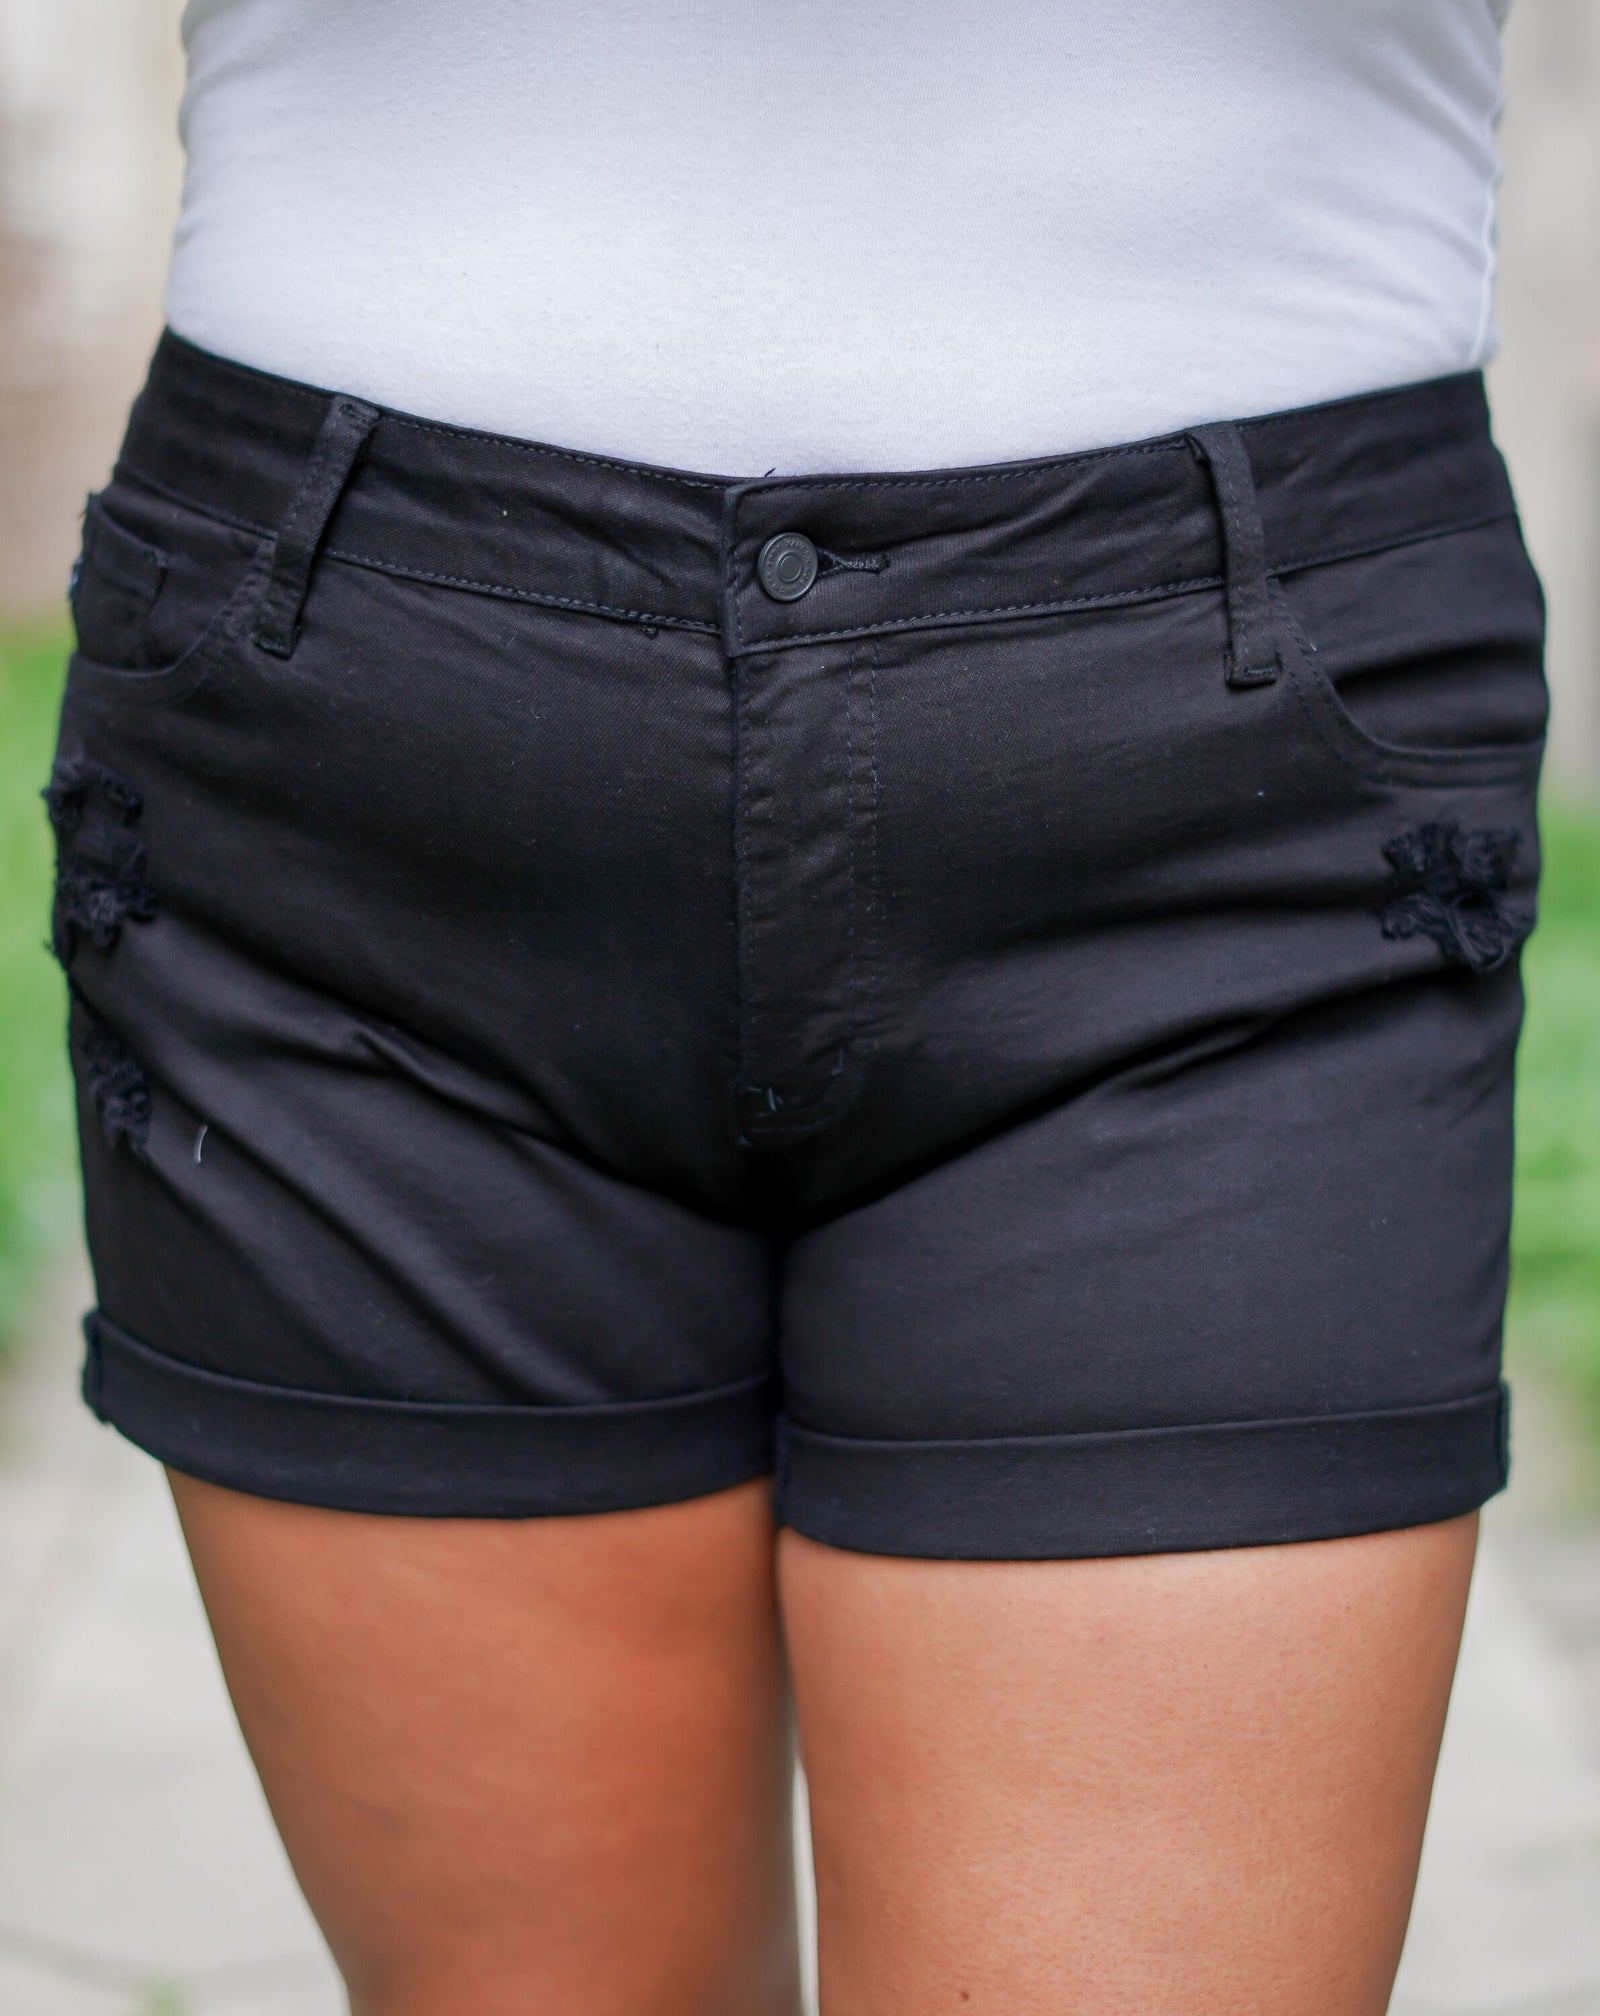 Back To Basics KanCan Shorts - Black - Curvy